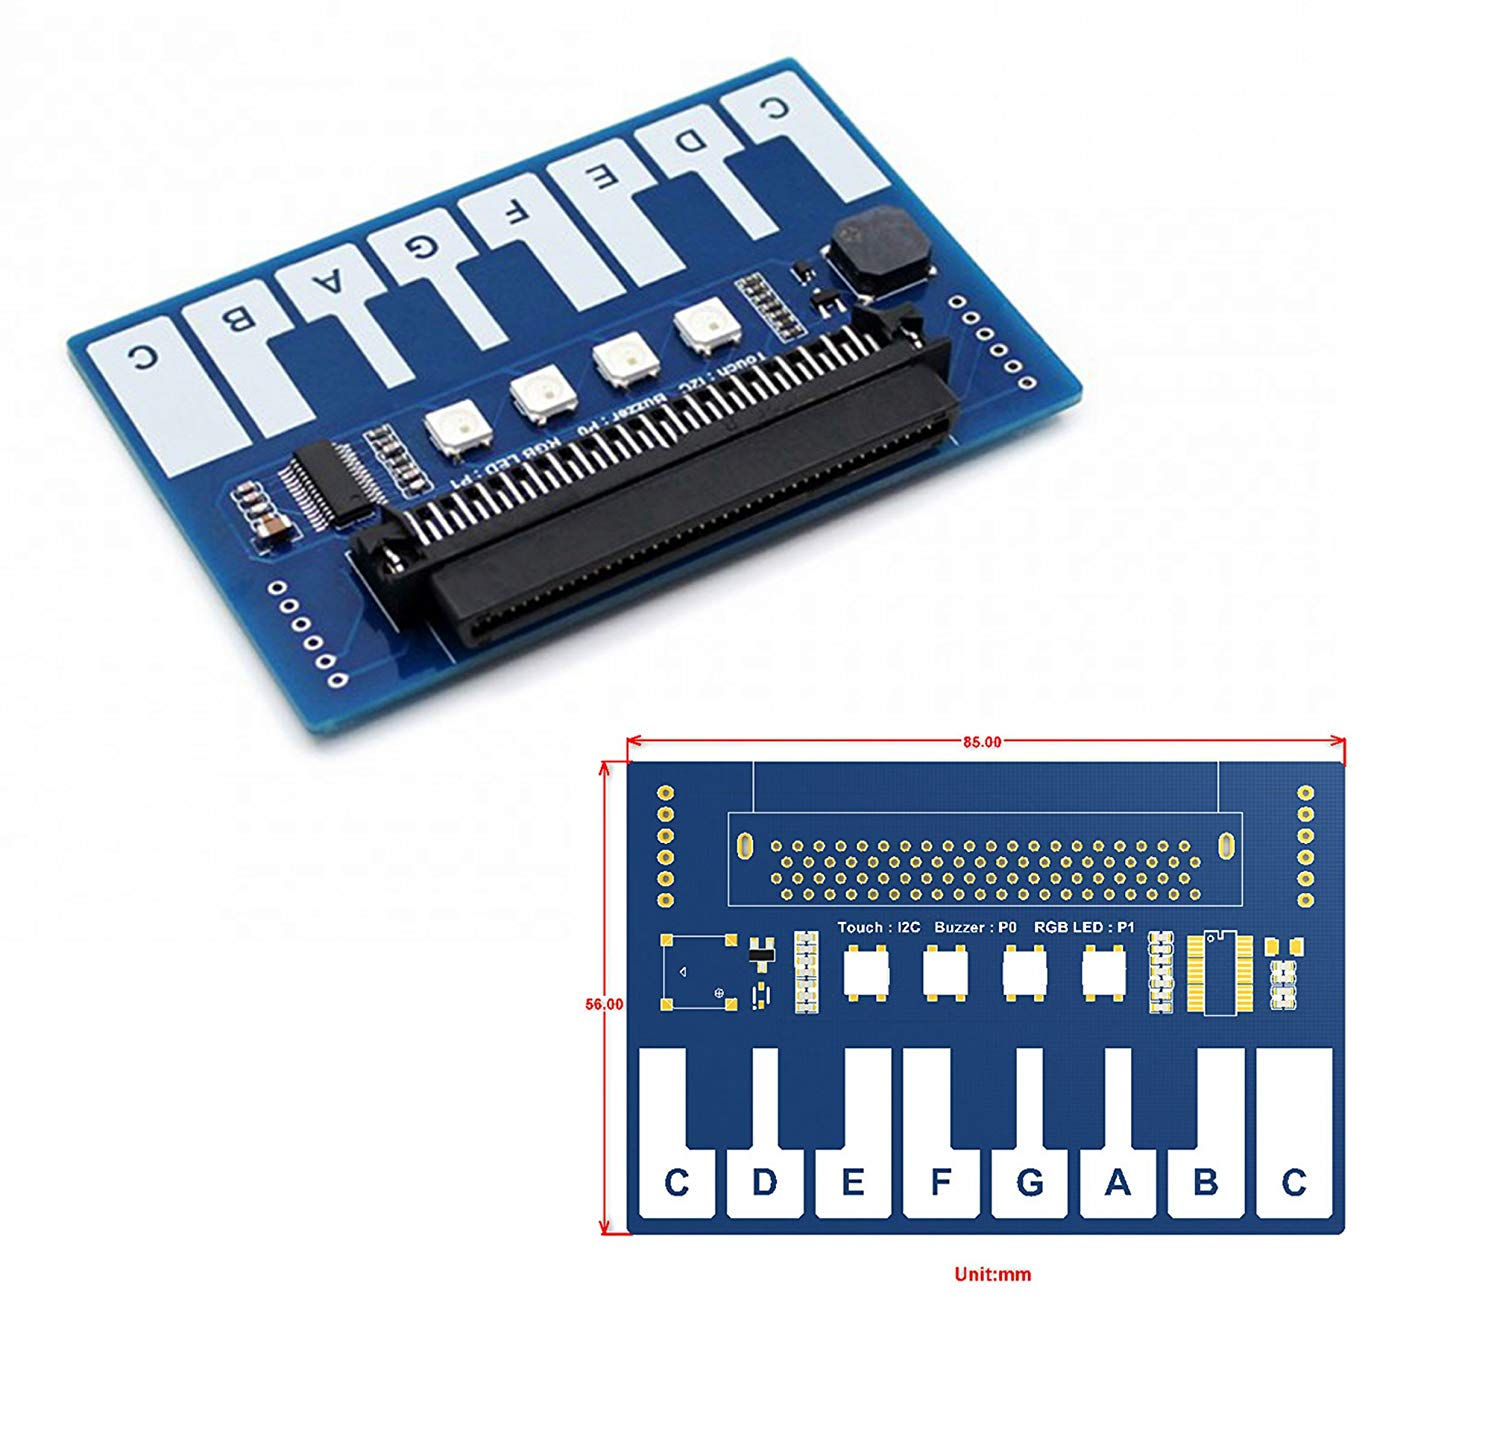 CQRobot Mini Piano Module for Micro Bit Touch Keys to Play Music with 4 RGB LEDs, Onboard Capacitive Touch Controller, 13x Touch Keys Through I2C Interface, Dimension: 85mm x 56mm